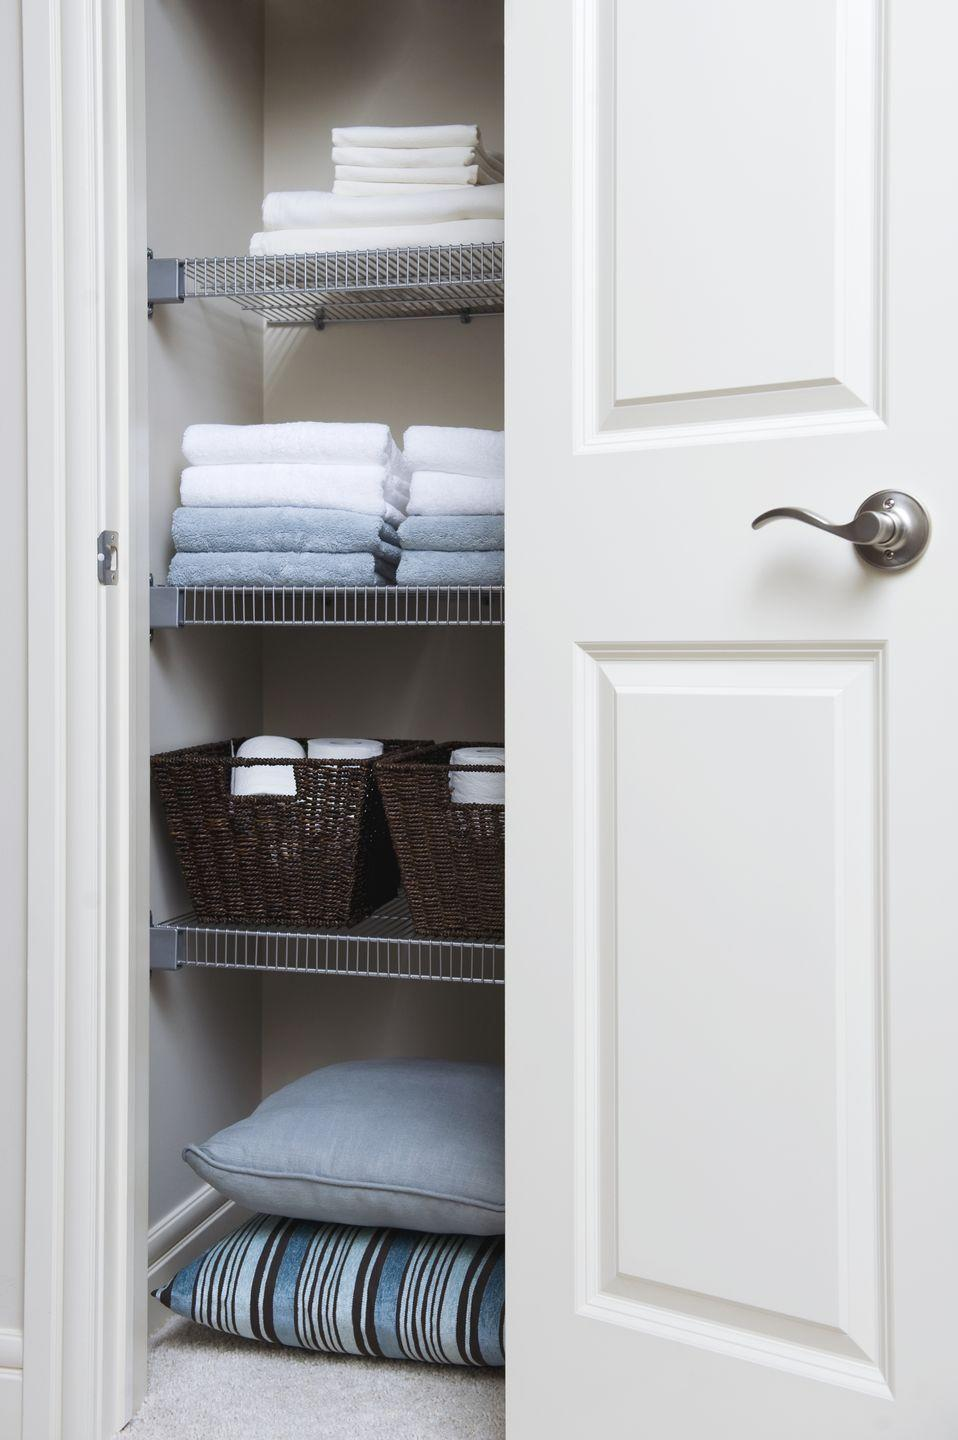 """<p>You can never have enough sheets and towels ... until your closet is overflowing with mismatched, ratty, and well-loved linens. Instead of tucking them away in baskets, place everything straight on the shelves so that you can see exactly what you have. Use shelf dividers to keep everything separated and prevent stacks from toppling over. Rosenthal's top tip: Store sheets sets within the pillowcase to take the stress out of making the bed.<br></p><p><a class=""""link rapid-noclick-resp"""" href=""""https://www.amazon.com/Dividers-Cabinets-Libraries-Separators-Organizers/?tag=syn-yahoo-20&ascsubtag=%5Bartid%7C10063.g.36459111%5Bsrc%7Cyahoo-us"""" rel=""""nofollow noopener"""" target=""""_blank"""" data-ylk=""""slk:SHOP SHELF DIVIDERS"""">SHOP SHELF DIVIDERS</a></p><p><strong>RELATED:</strong> <a href=""""https://www.goodhousekeeping.com/home-products/a22791349/ideal-bed-creation/"""" rel=""""nofollow noopener"""" target=""""_blank"""" data-ylk=""""slk:How to Build the Best Bed Ever"""" class=""""link rapid-noclick-resp"""">How to Build the Best Bed Ever</a></p>"""